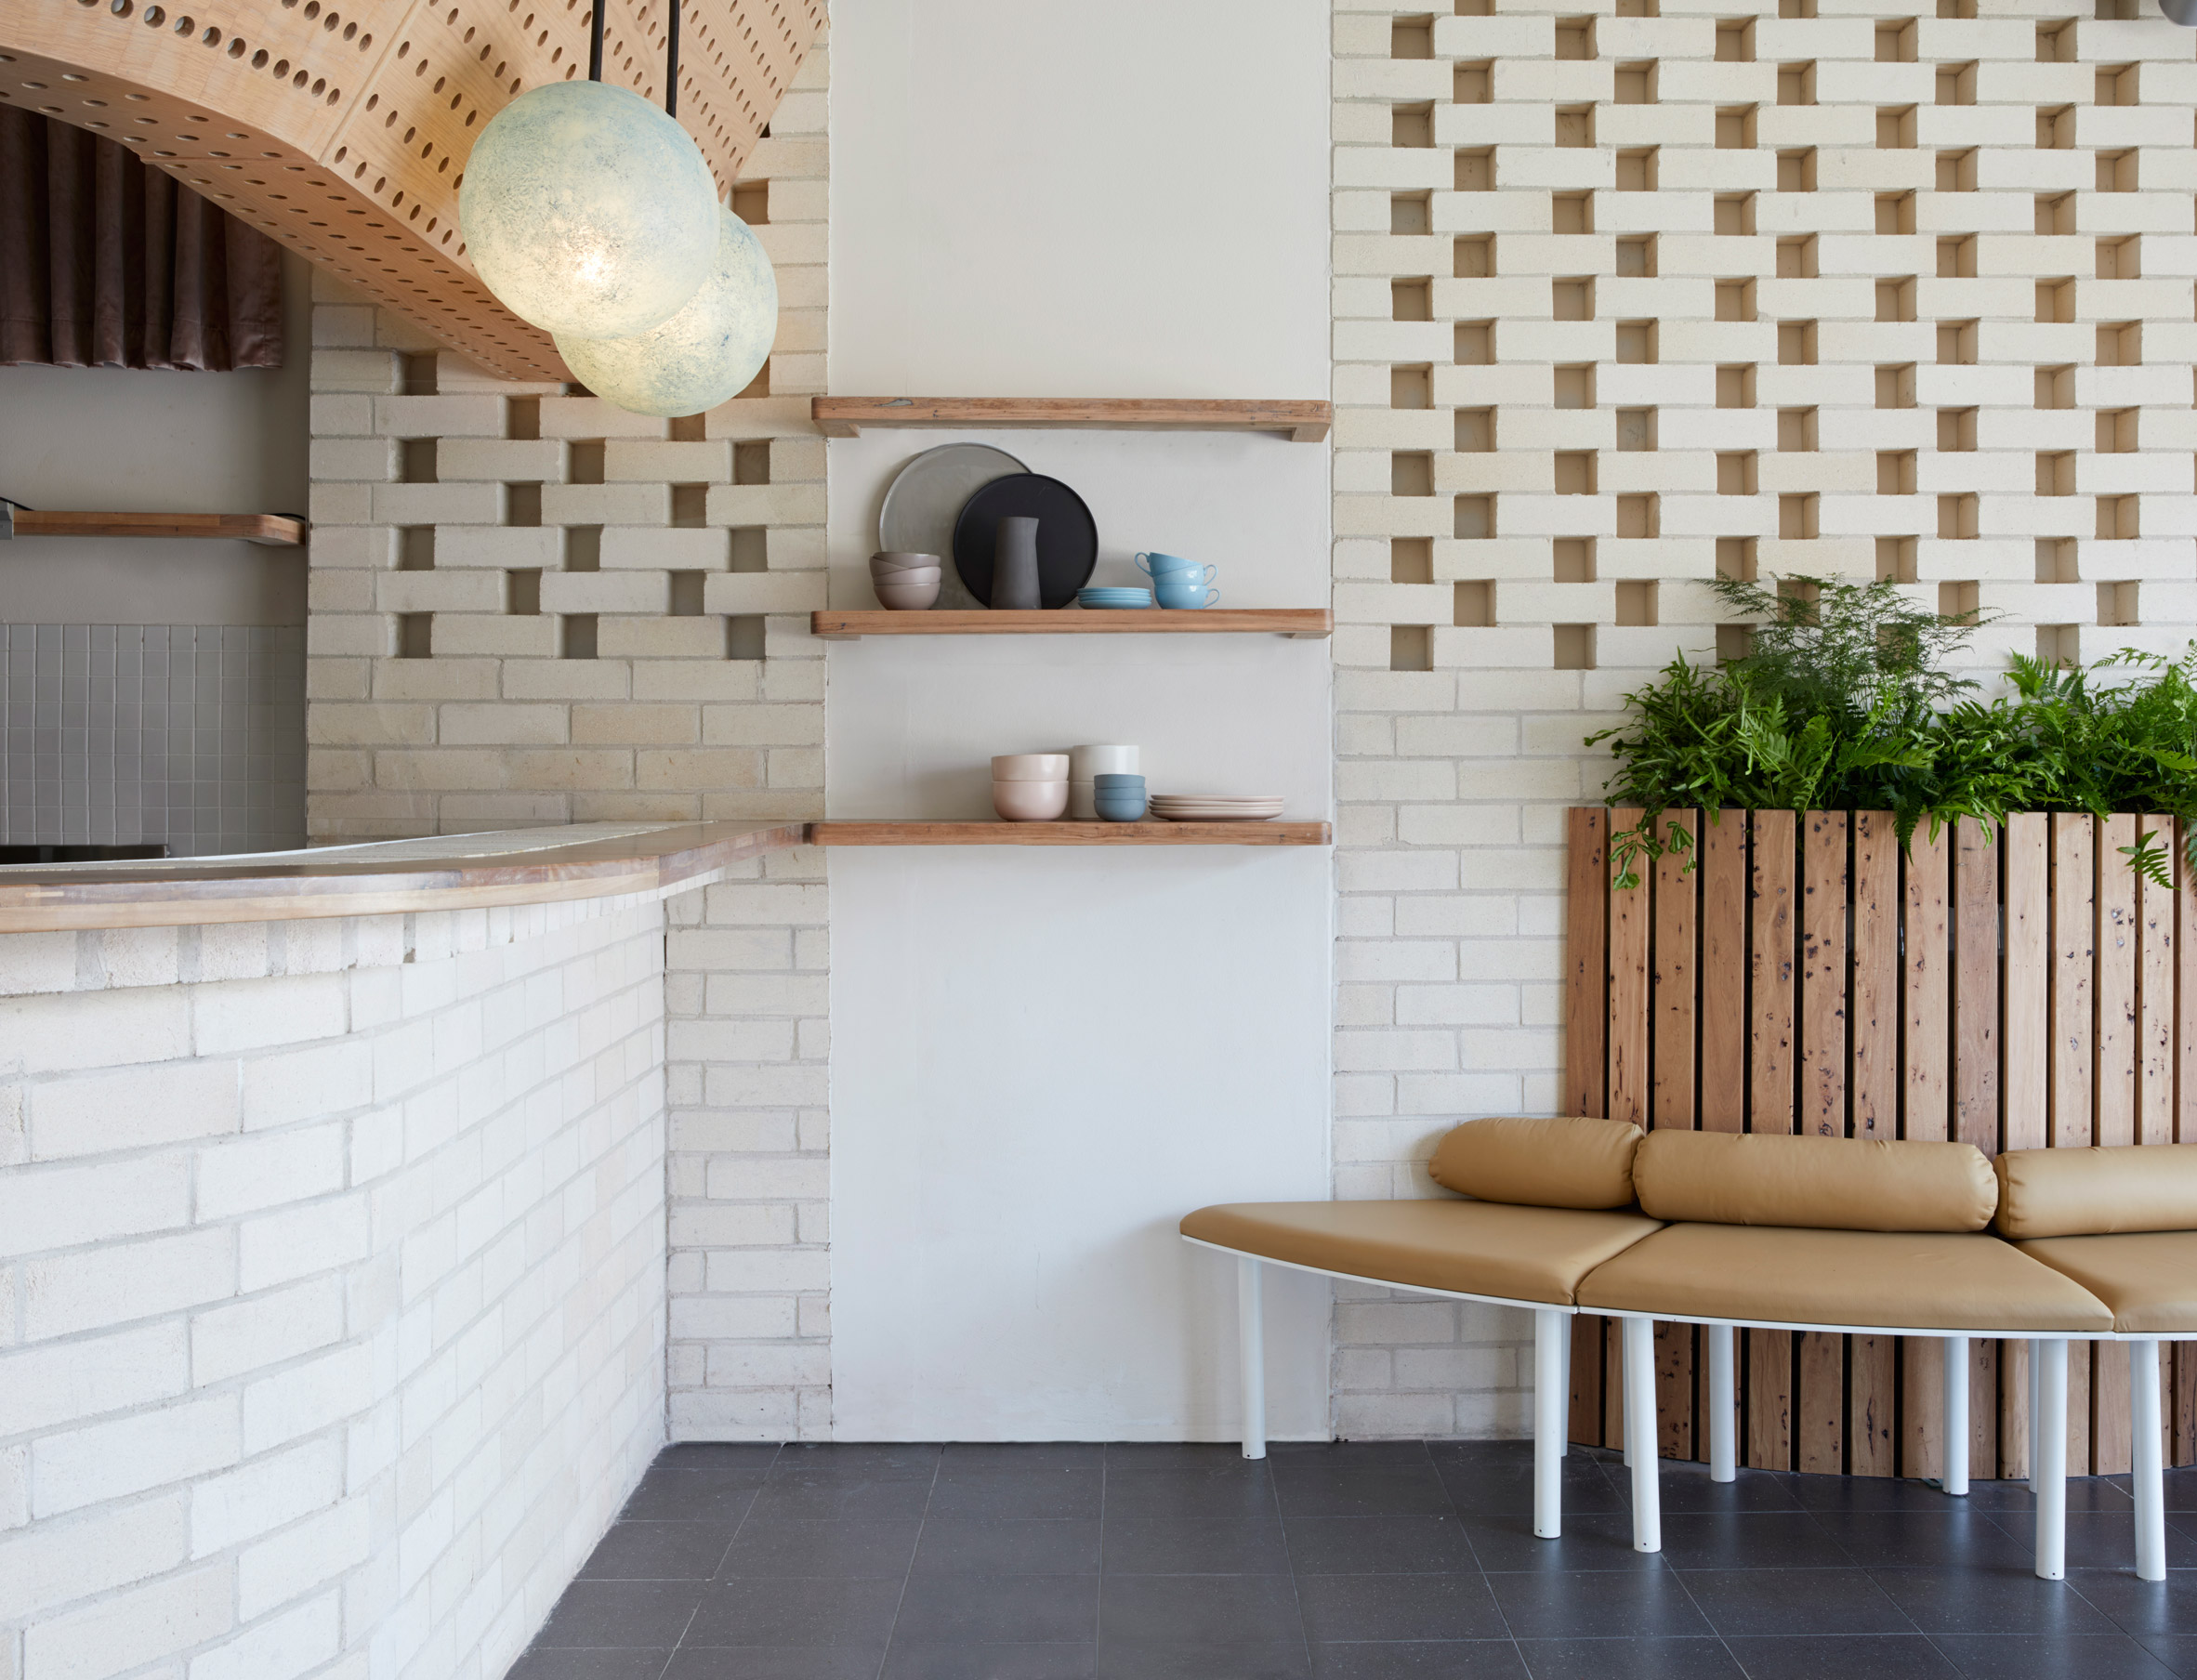 dessert-kitchen-matt-woods-design-interiors-cafe-sydney-australia_dezeen_2364_col_1.jpg